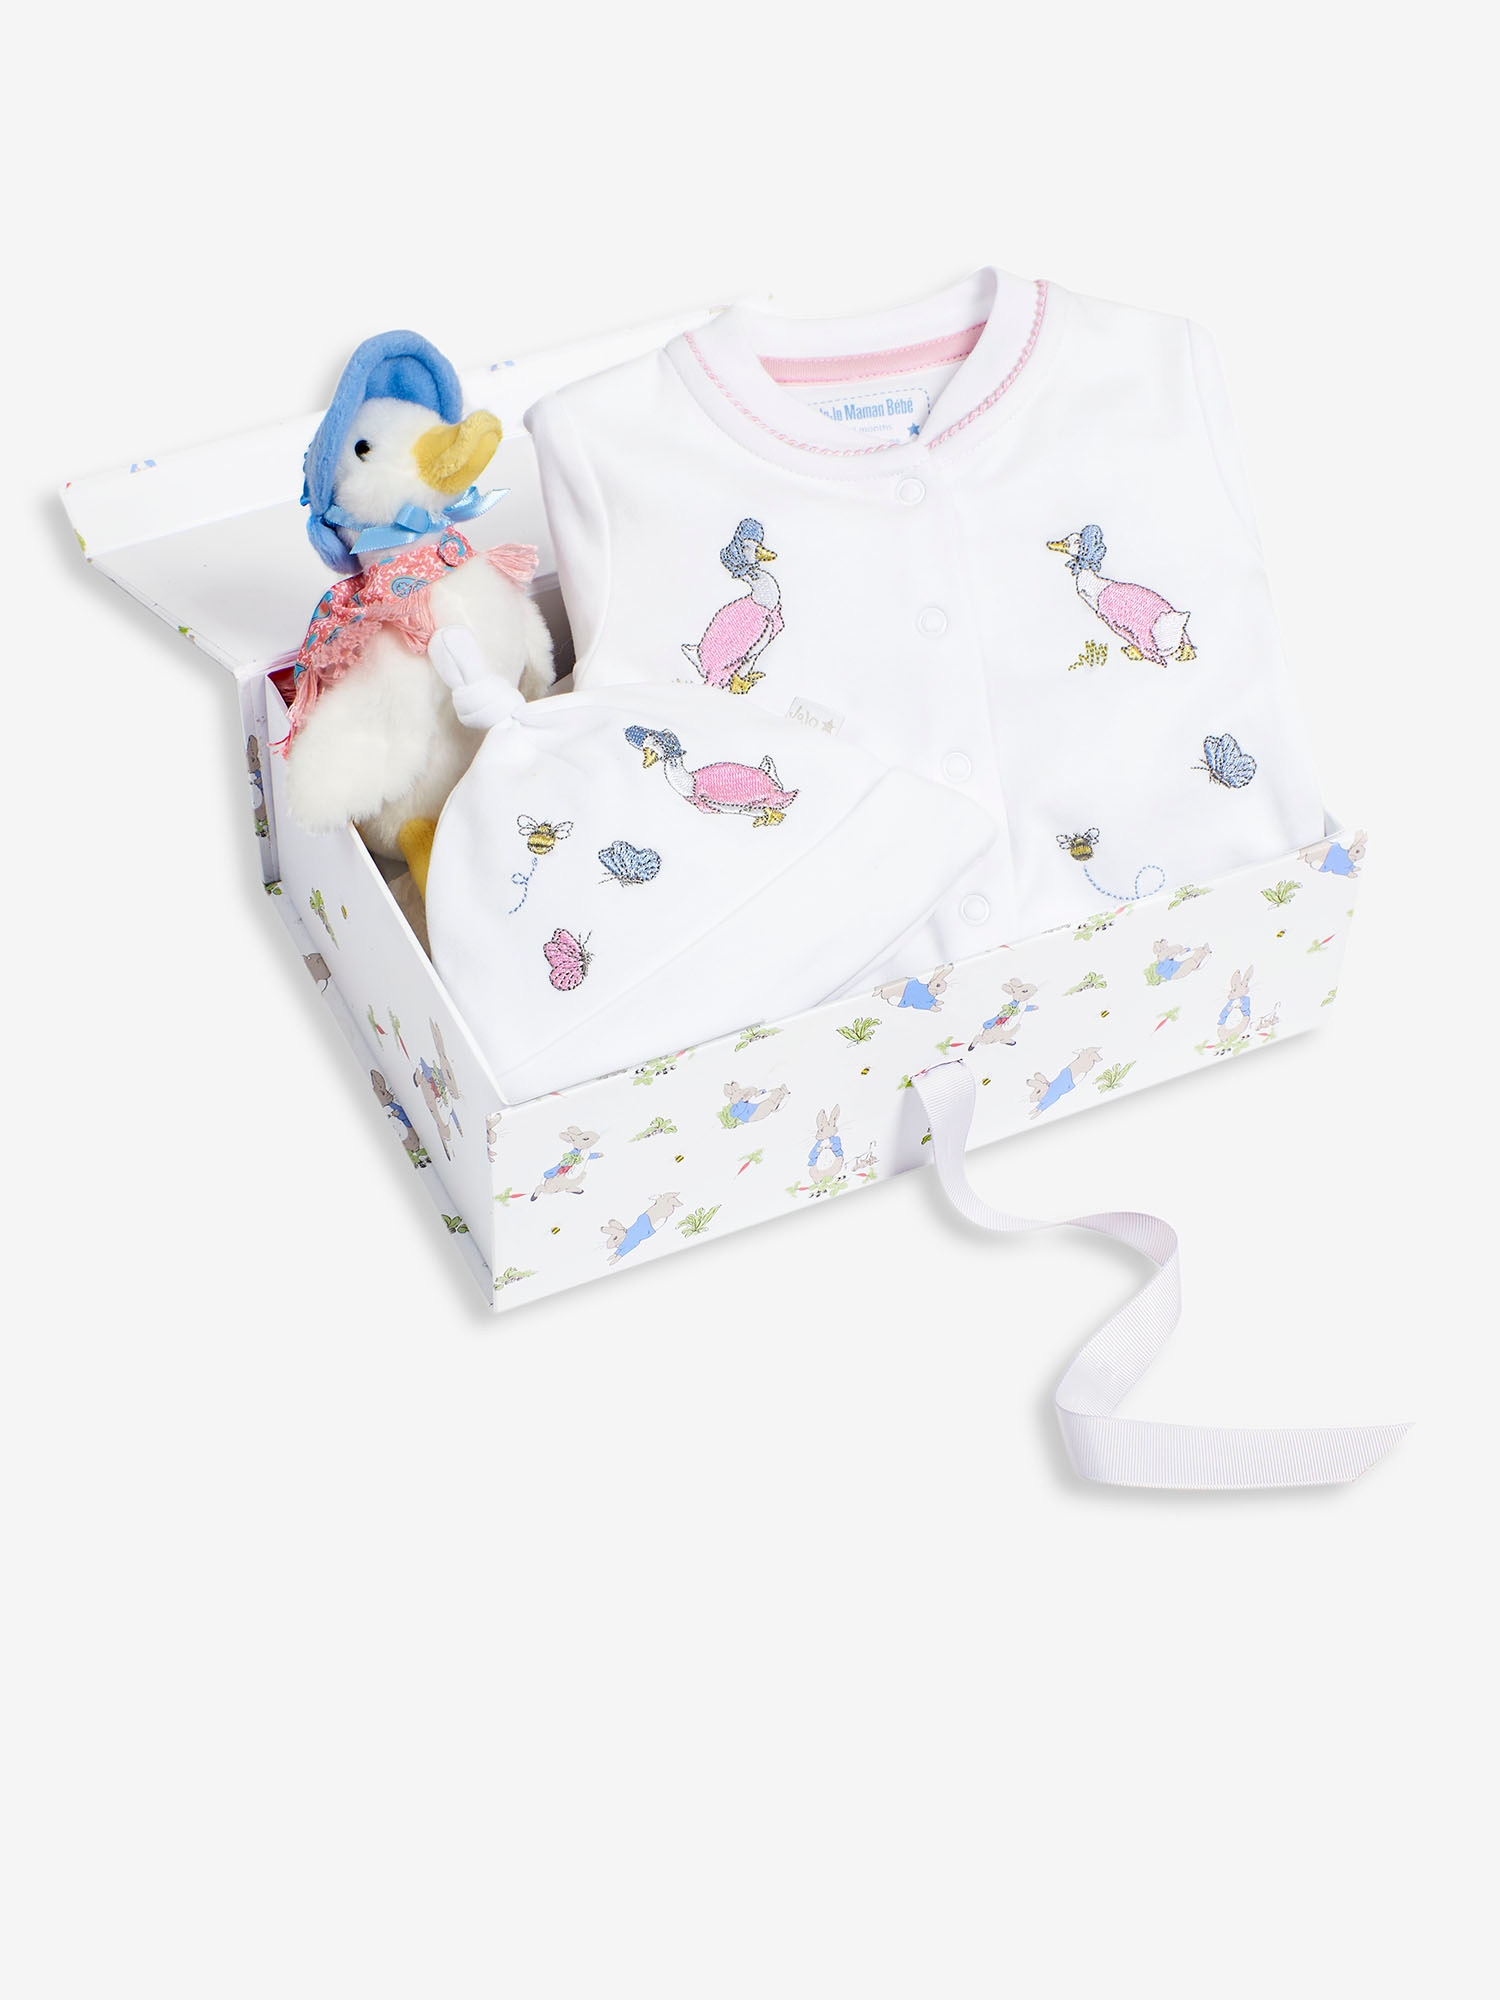 Jemima Puddle-Duck Gift Set 0-3 Months